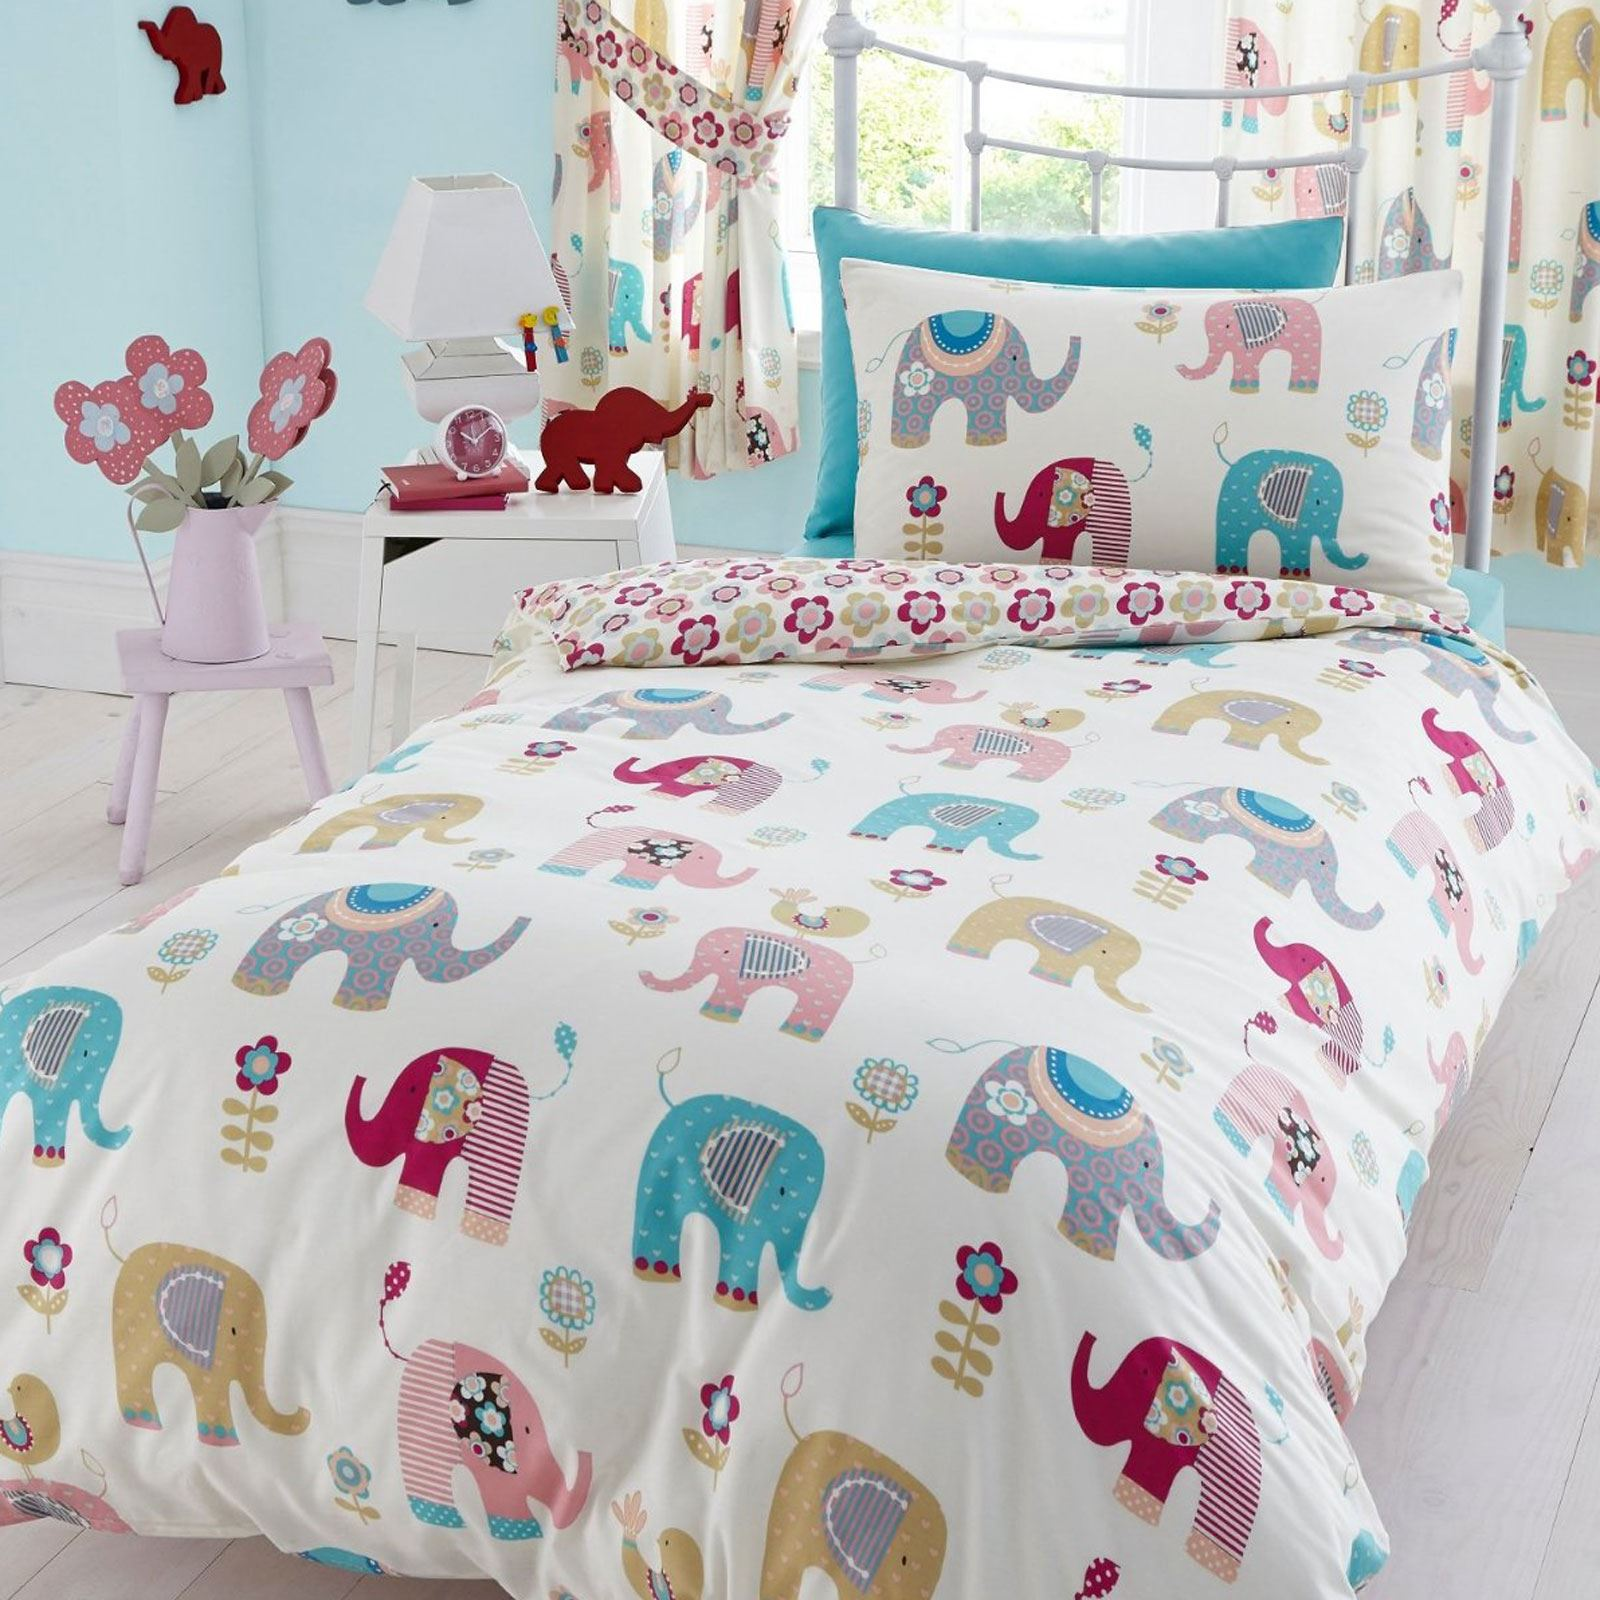 100 cotton disney and character twin duvet cover sets kids ebay. Black Bedroom Furniture Sets. Home Design Ideas